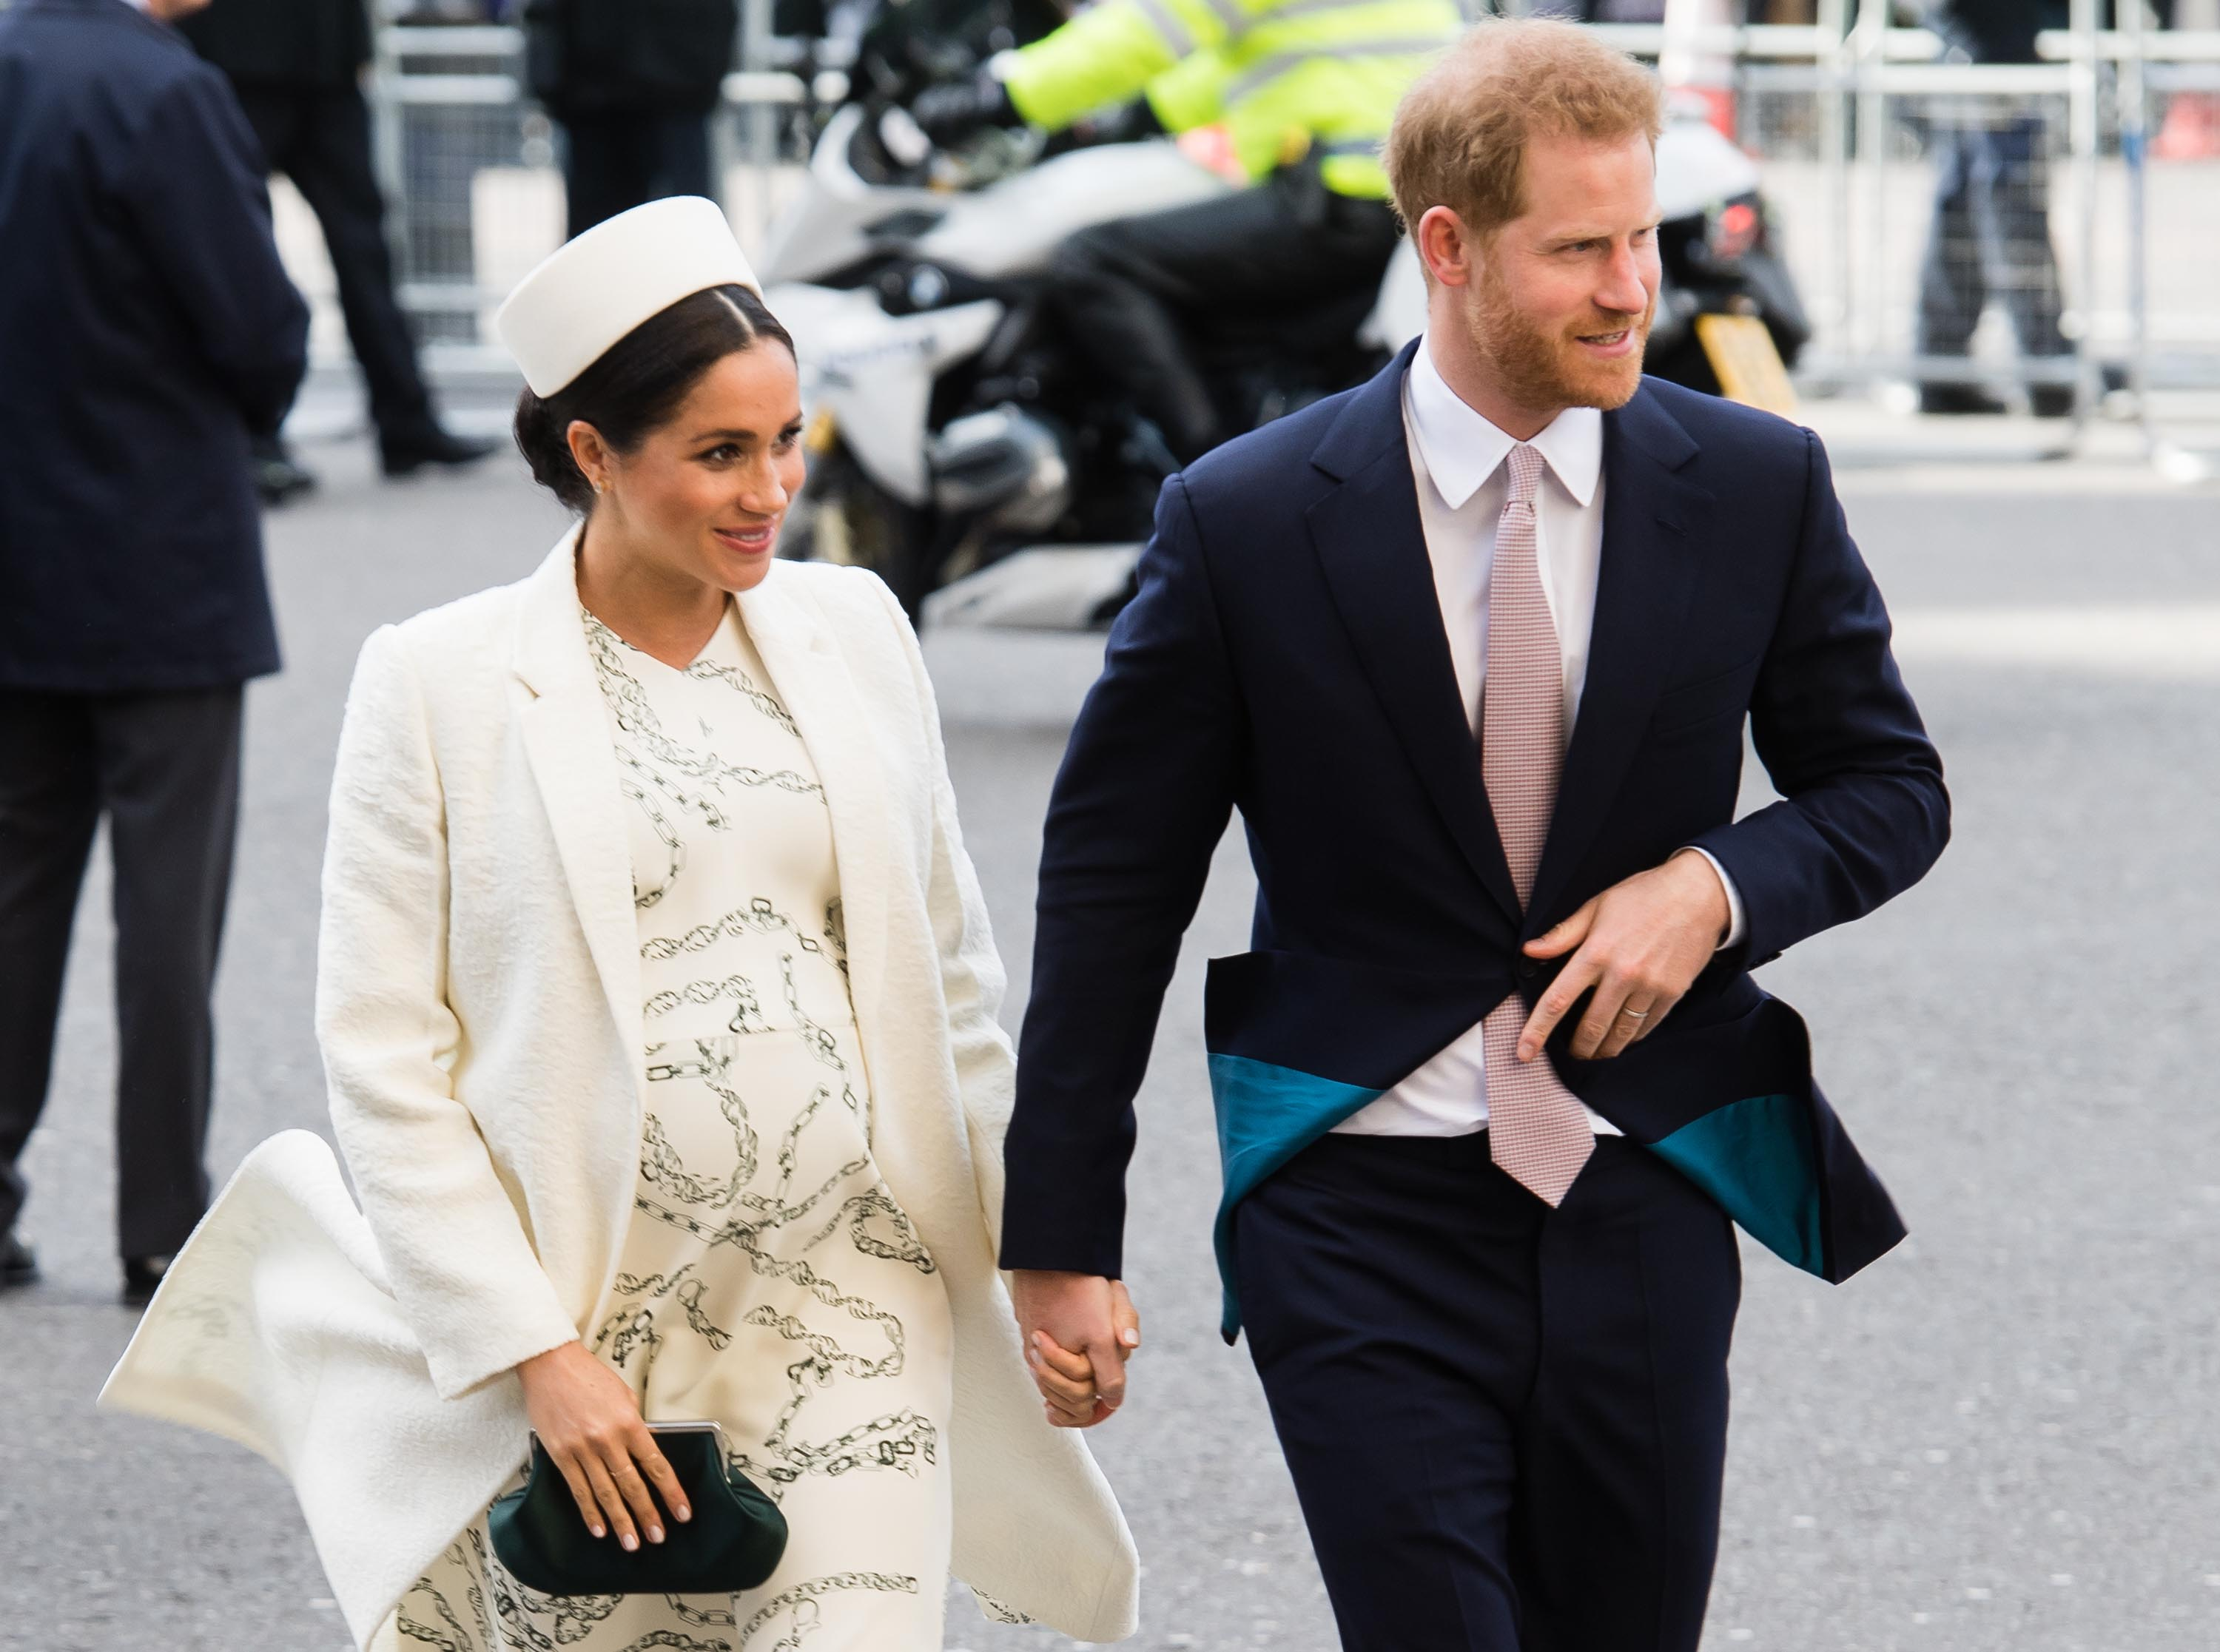 2dfba92d8301 Meghan Markle Just Channelled Princess Diana With Her White Dress and  Pillbox Hat